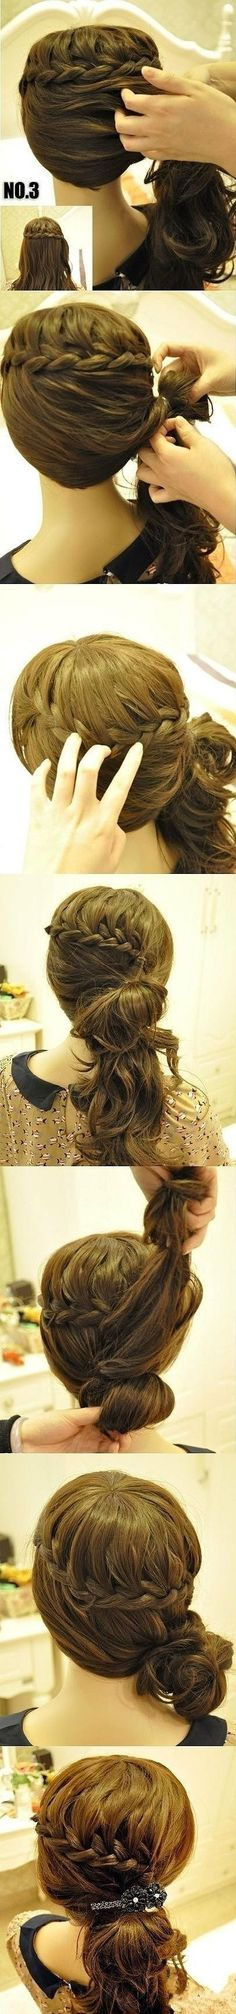 waterfall braid and low bun